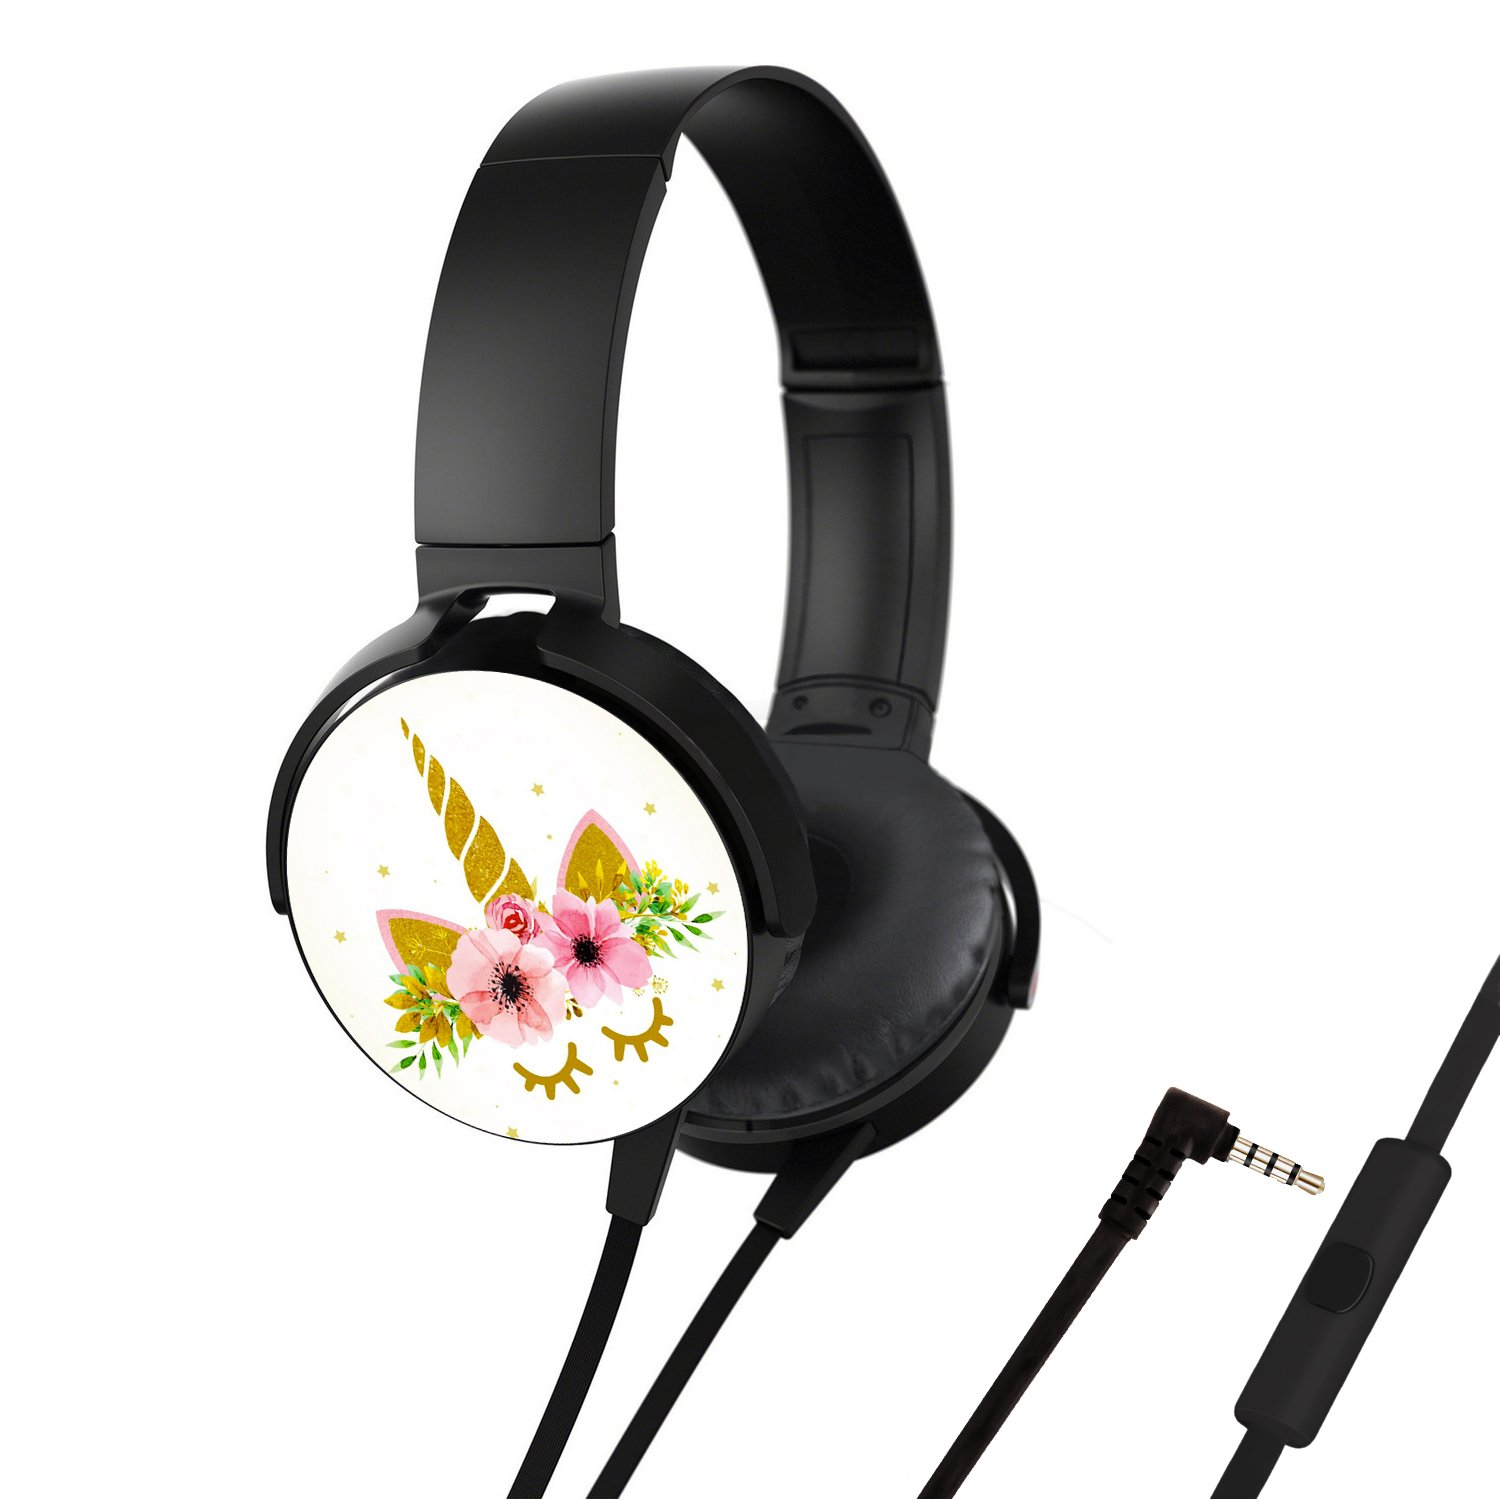 Portable Headsets, Bass Stereo Wired Over Ear Headphones Build-in Mic for Smartphones iPhone PC Laptop, Customized Design with Soft Earmuff, Noise Cancellation - Golden Unicorn